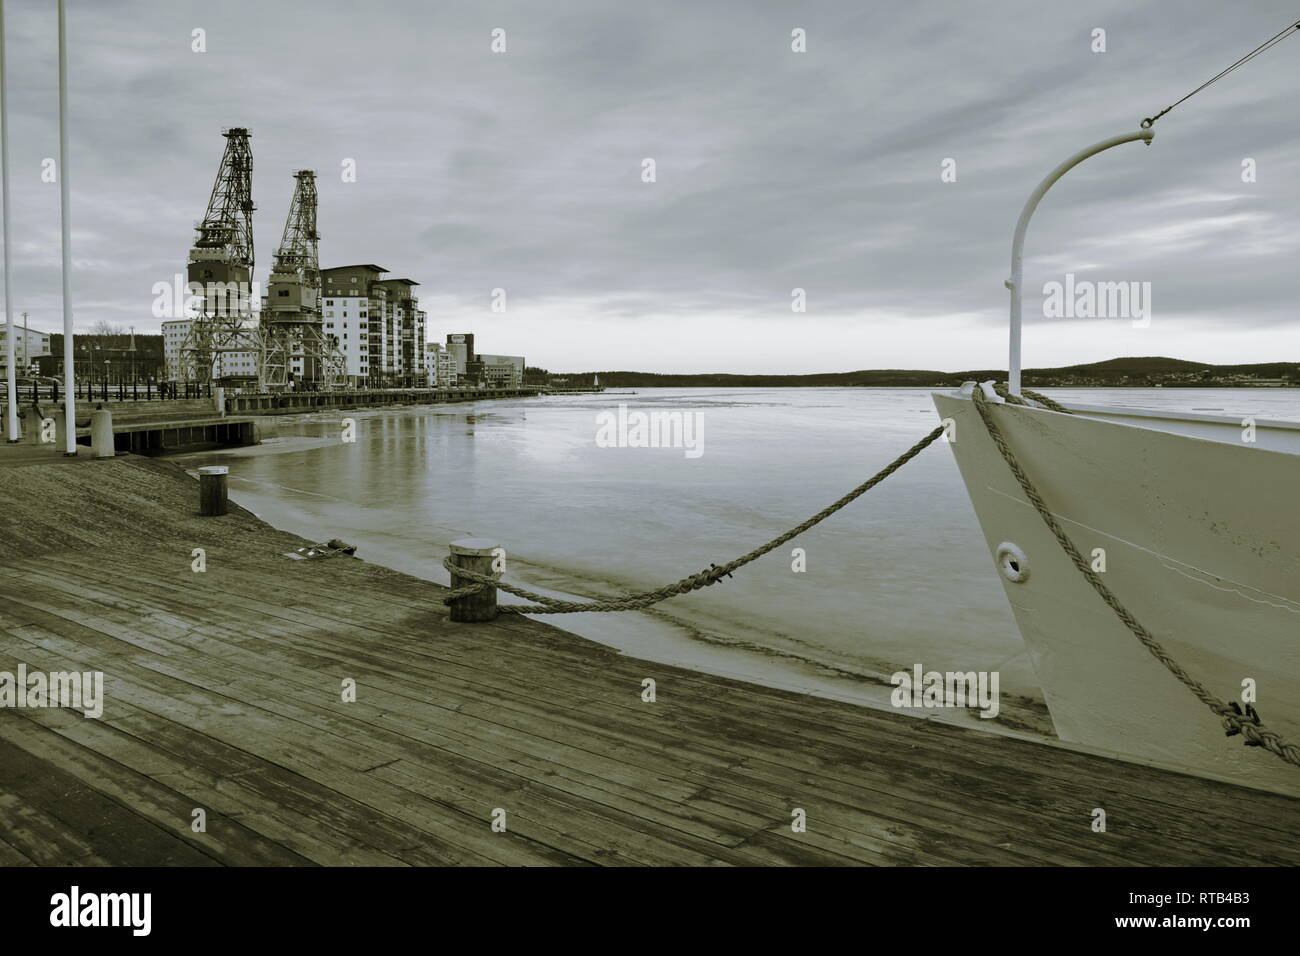 A ship lies moored in an ice covered harbor bay. Monochrome photograph,tones sepia and blue. - Stock Image